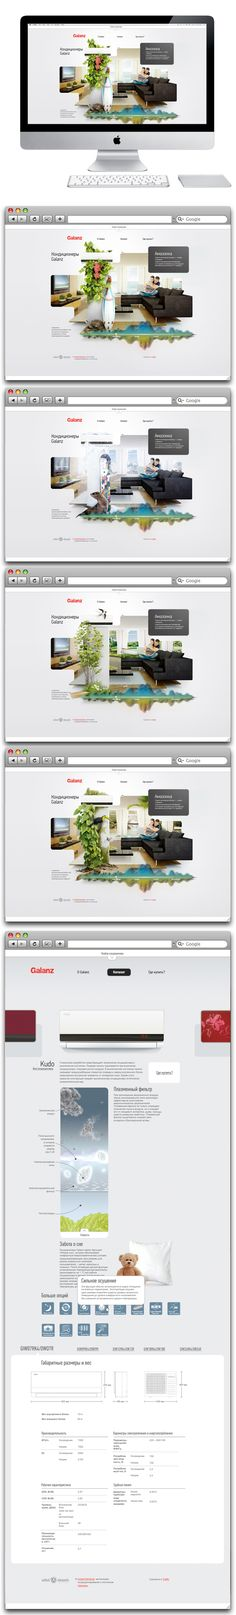 Galanz by Sergei Gurov, via Behance - love the art direction and the unordered grid